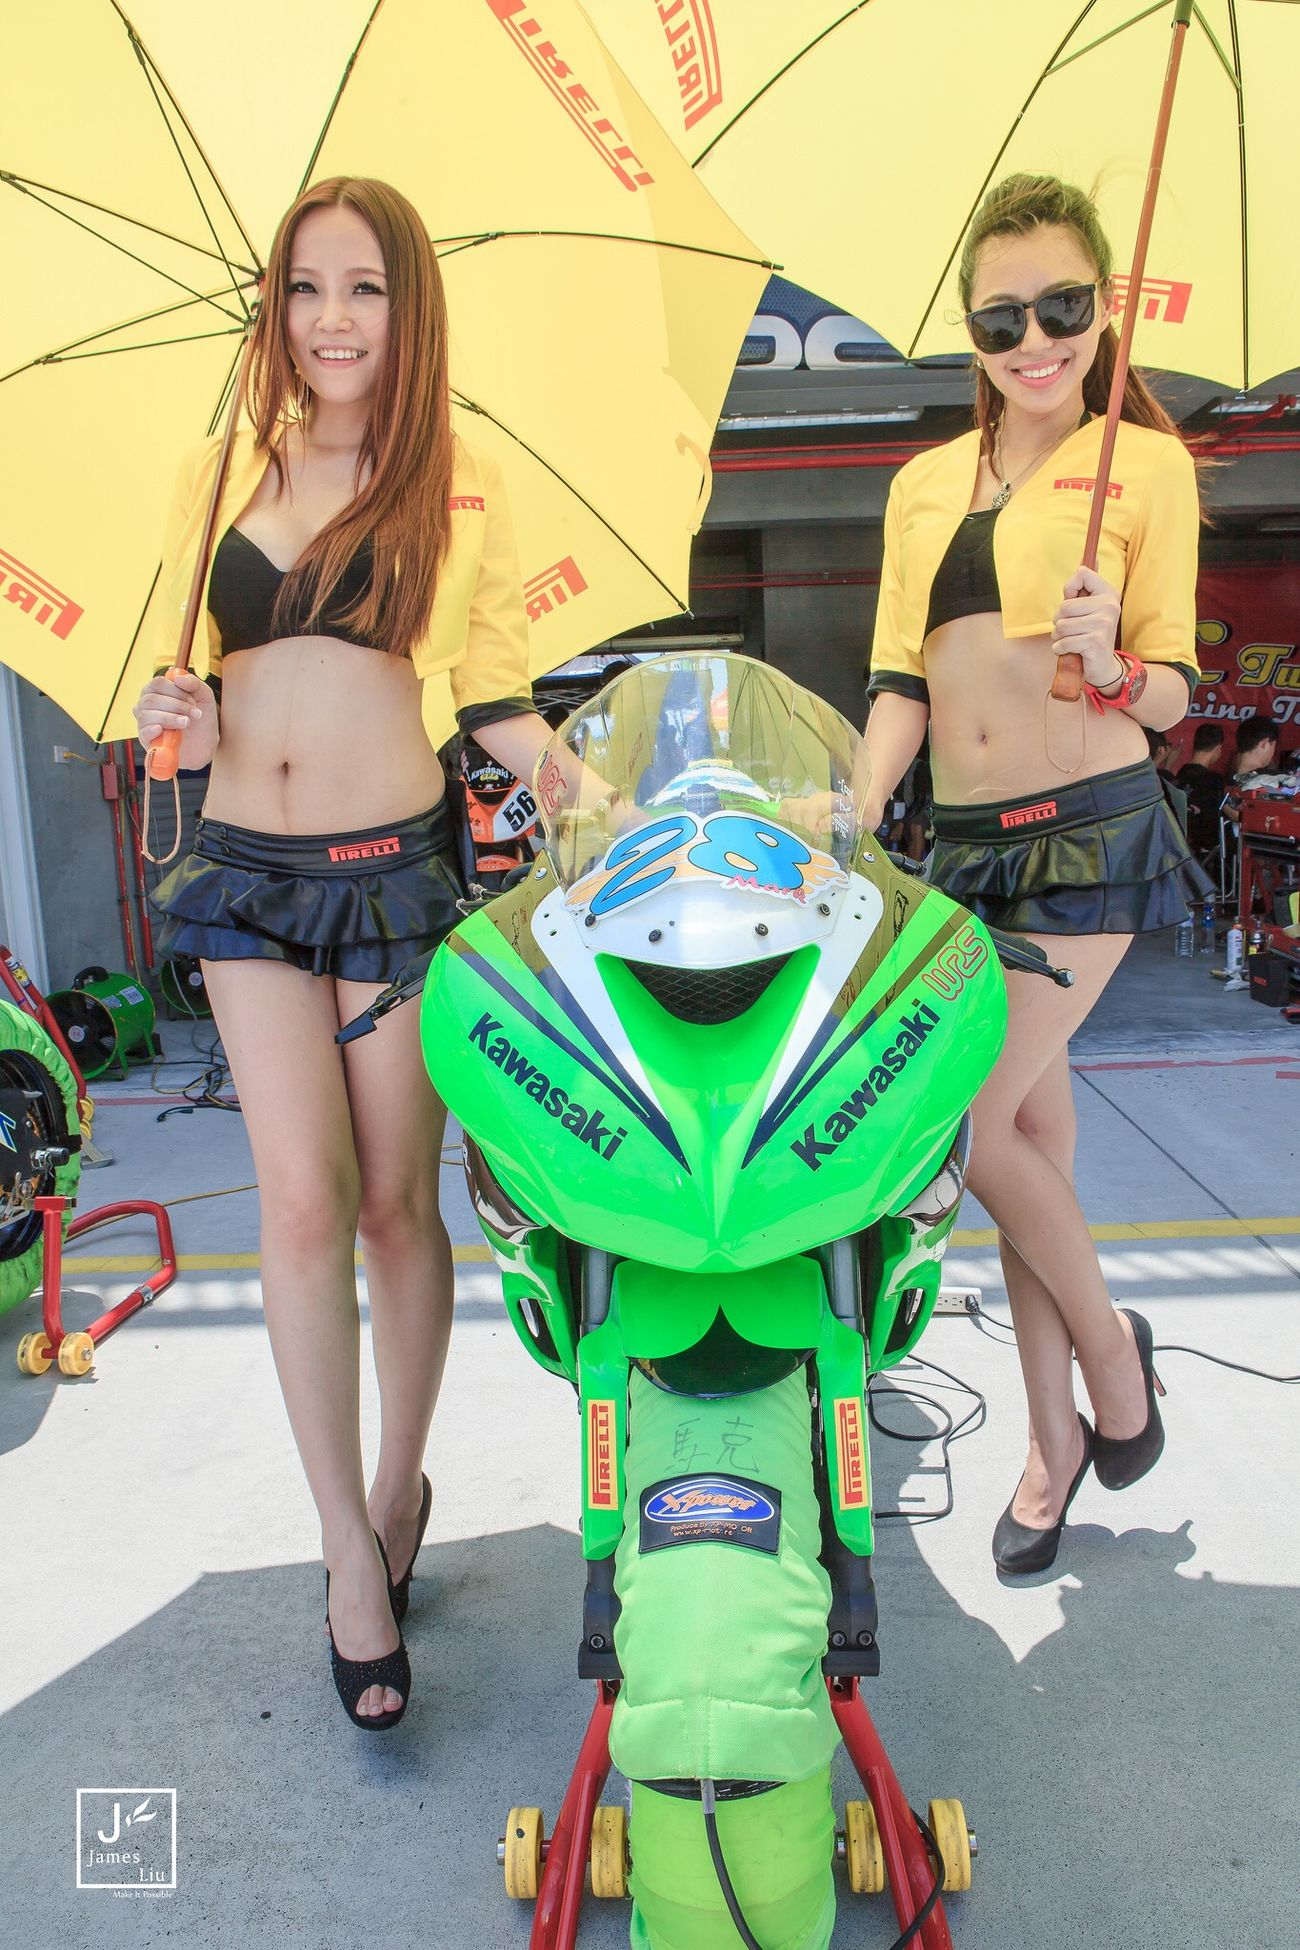 Taking Photo EyeEm Taiwan Motorcycles Beautiful Girl Juicy Girl Hot People Watching Photo Shoot Pirelli Racing